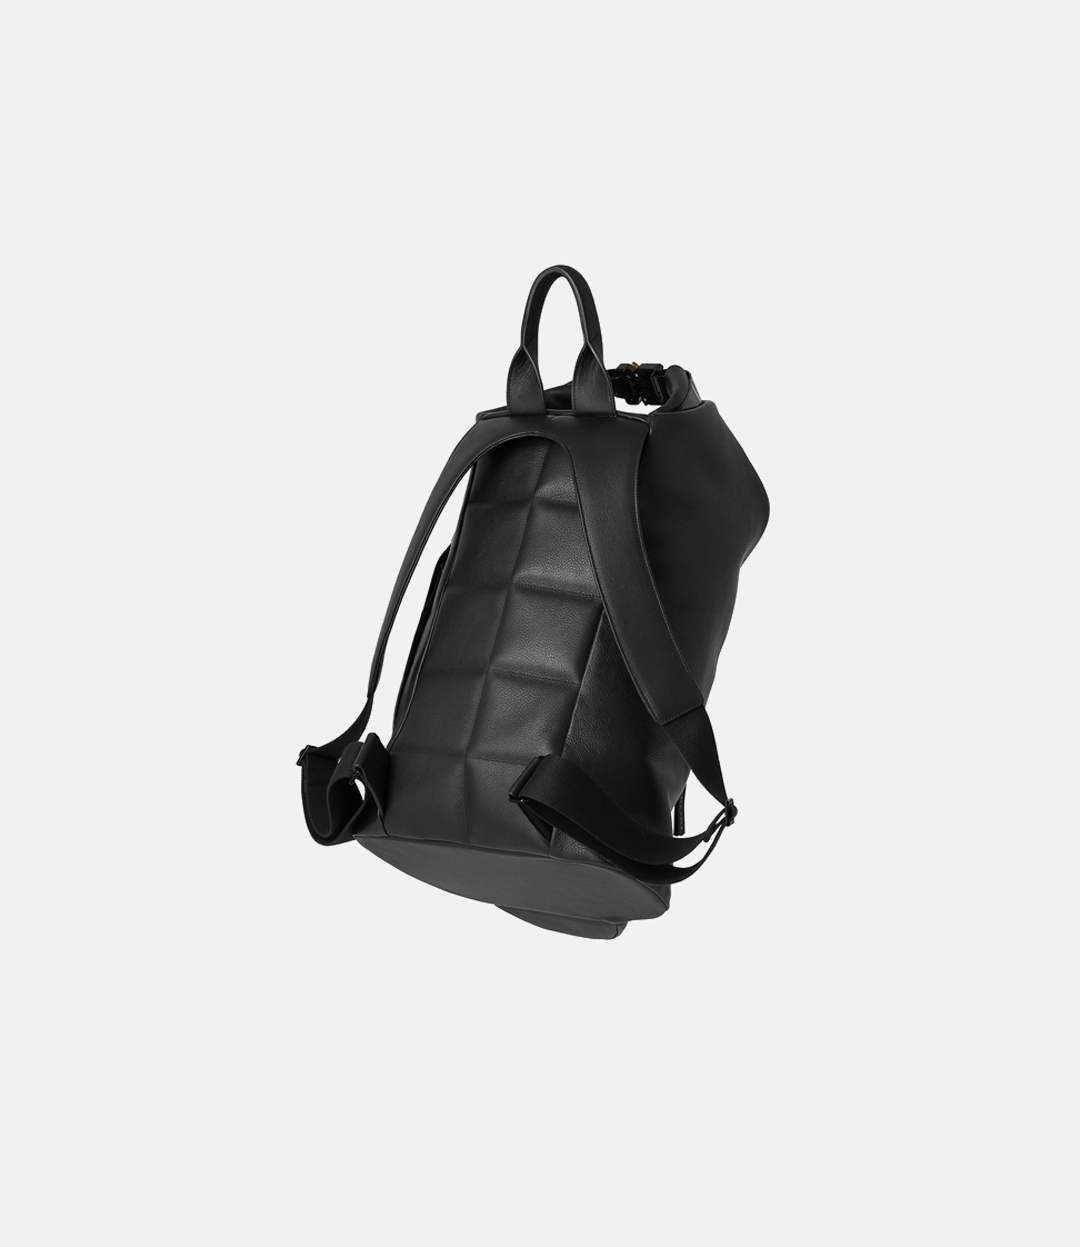 Campbell Cole. CampbellCole. Annex Collection. Annex Back Pack. AnnexBackPack. Black.